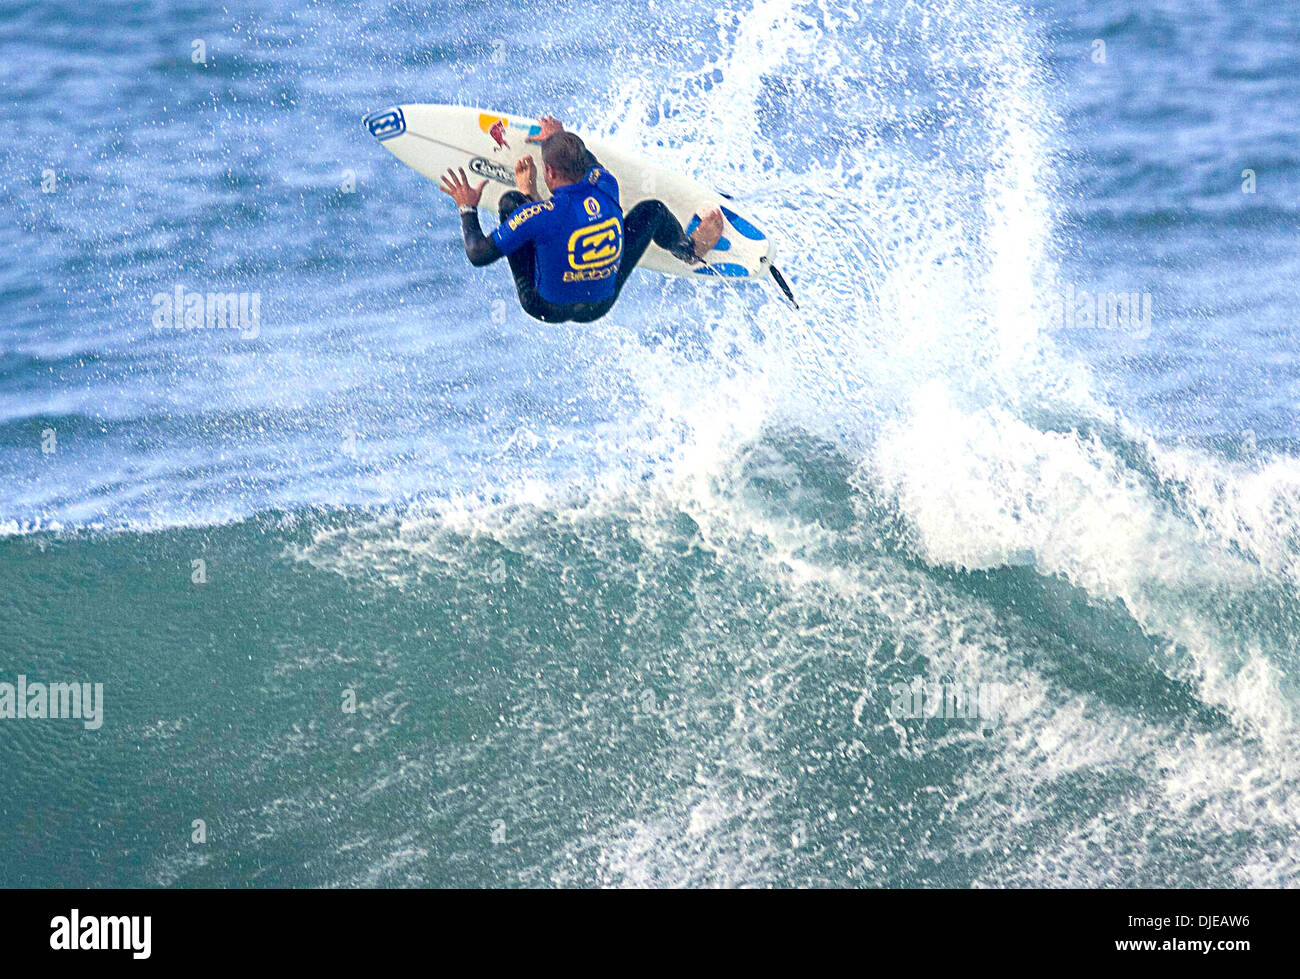 Jul 12, 2004; Jeffreys Bay, South Africa; Surfing. FosterÕs ASP MenÕs World Tour. Billabong Pro at Supertubes, Jeffreys Bay, South Africa. Surfer SEAN HOLMES airs out at The Billabong Pro is the fifth of 12 events on the 2004 FosterÕs menÕs ASP World Championship Tour (WCT) and features the top 45 surfers in world and three wild card surfers. - Stock Image